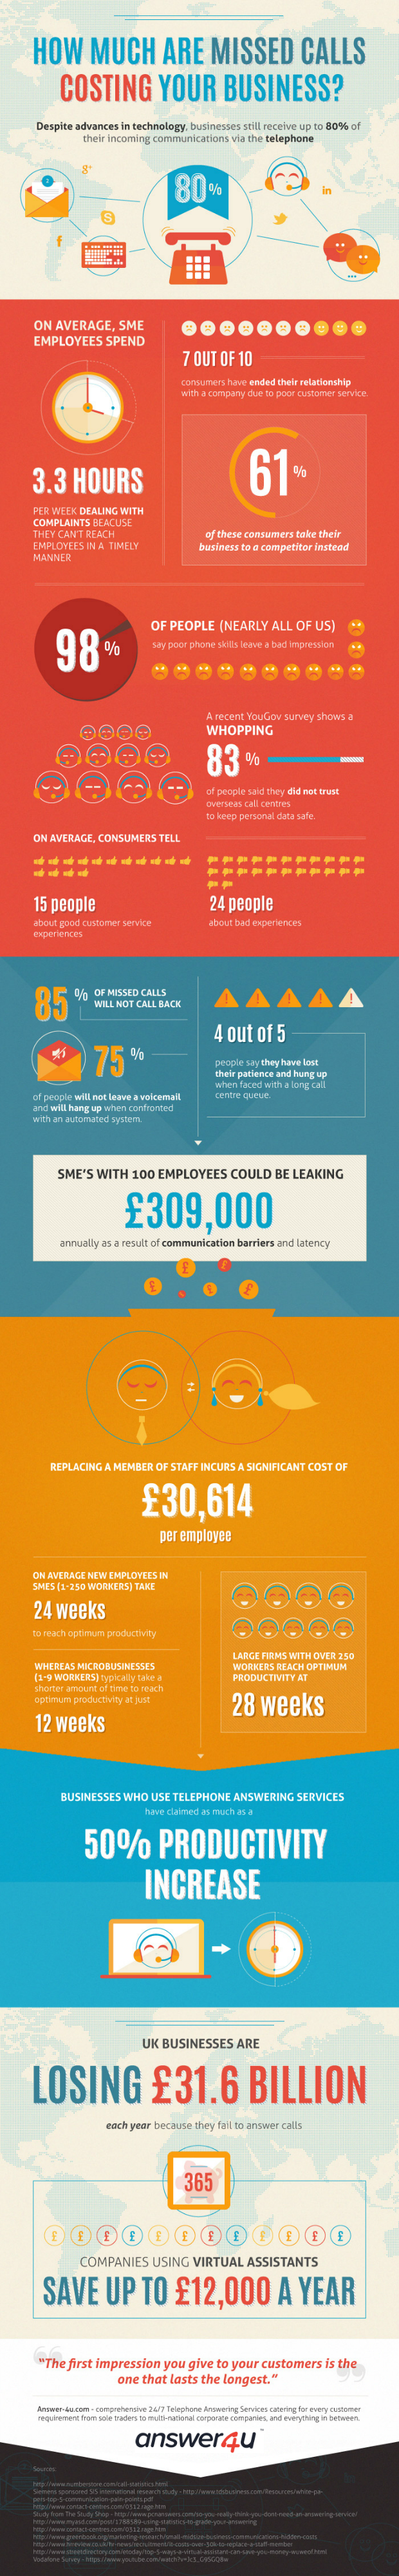 How Much are Missed Telephone Calls Costing your Business?